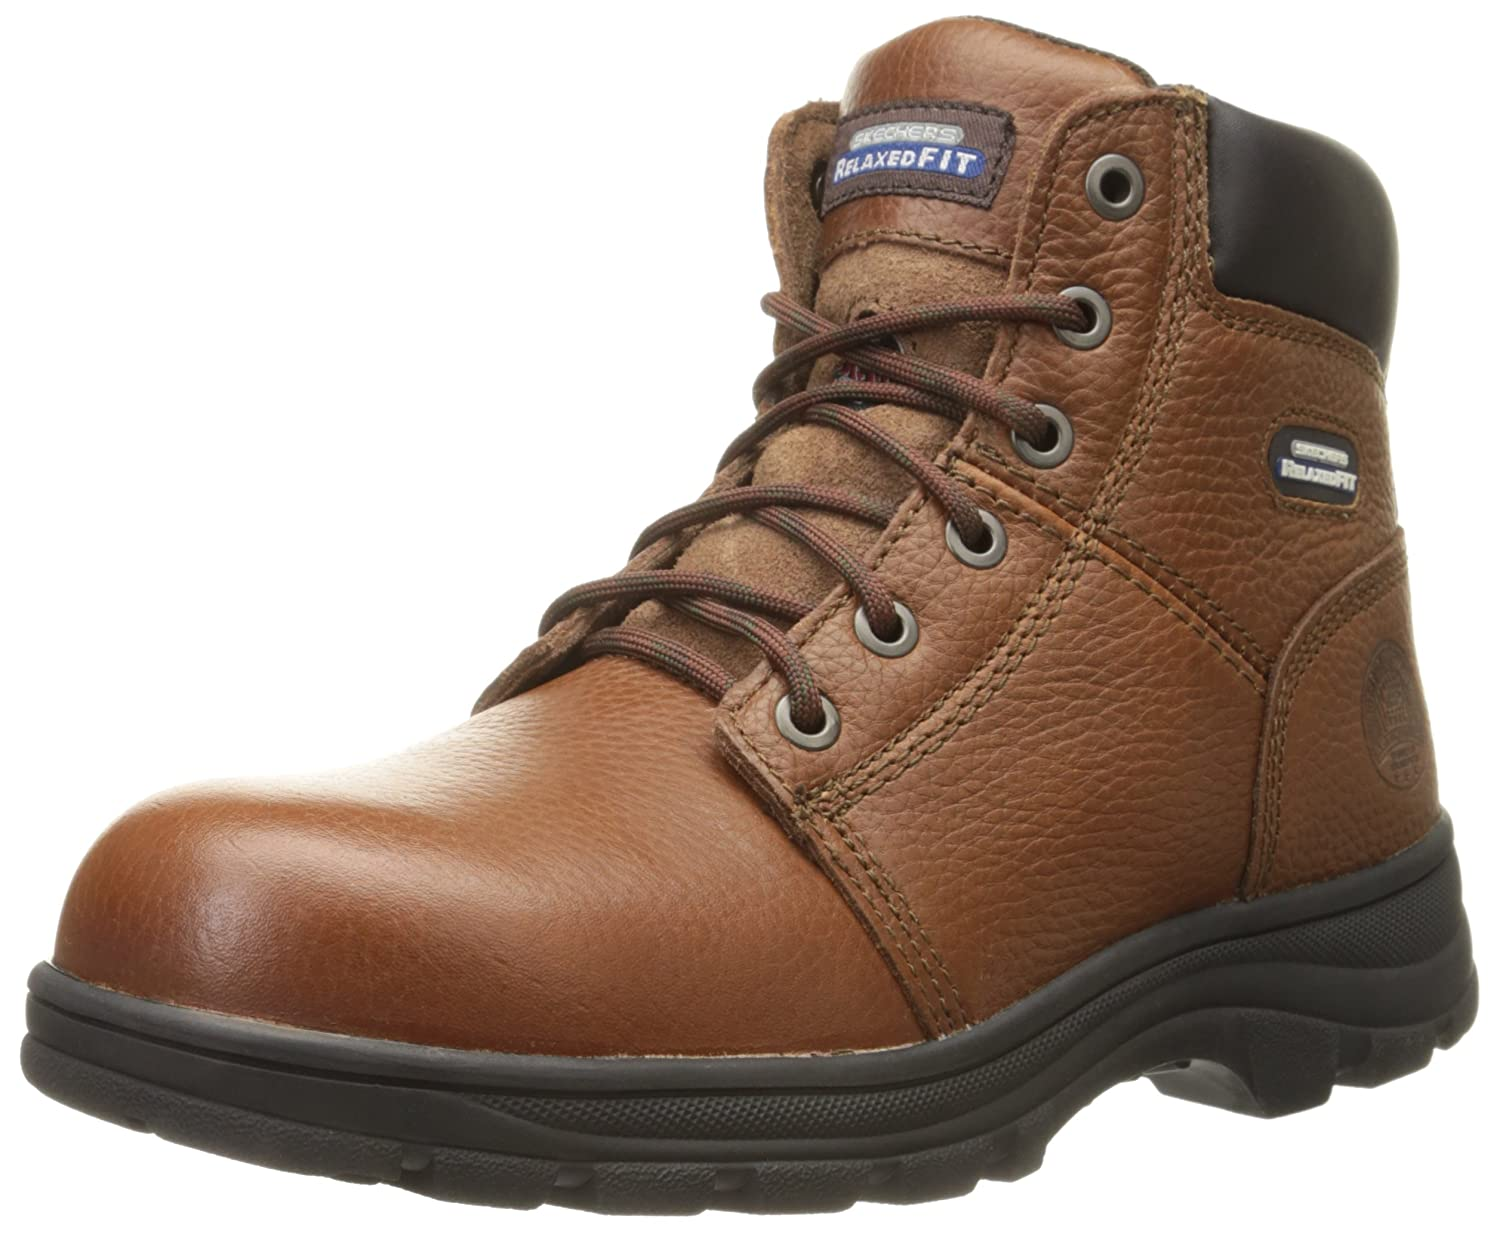 2da760a80a Skechers for Work Men s 77009 Workshire Relaxed Fit Work Steel Toe Boot  Brown 10 2E US  Amazon.in  Shoes   Handbags